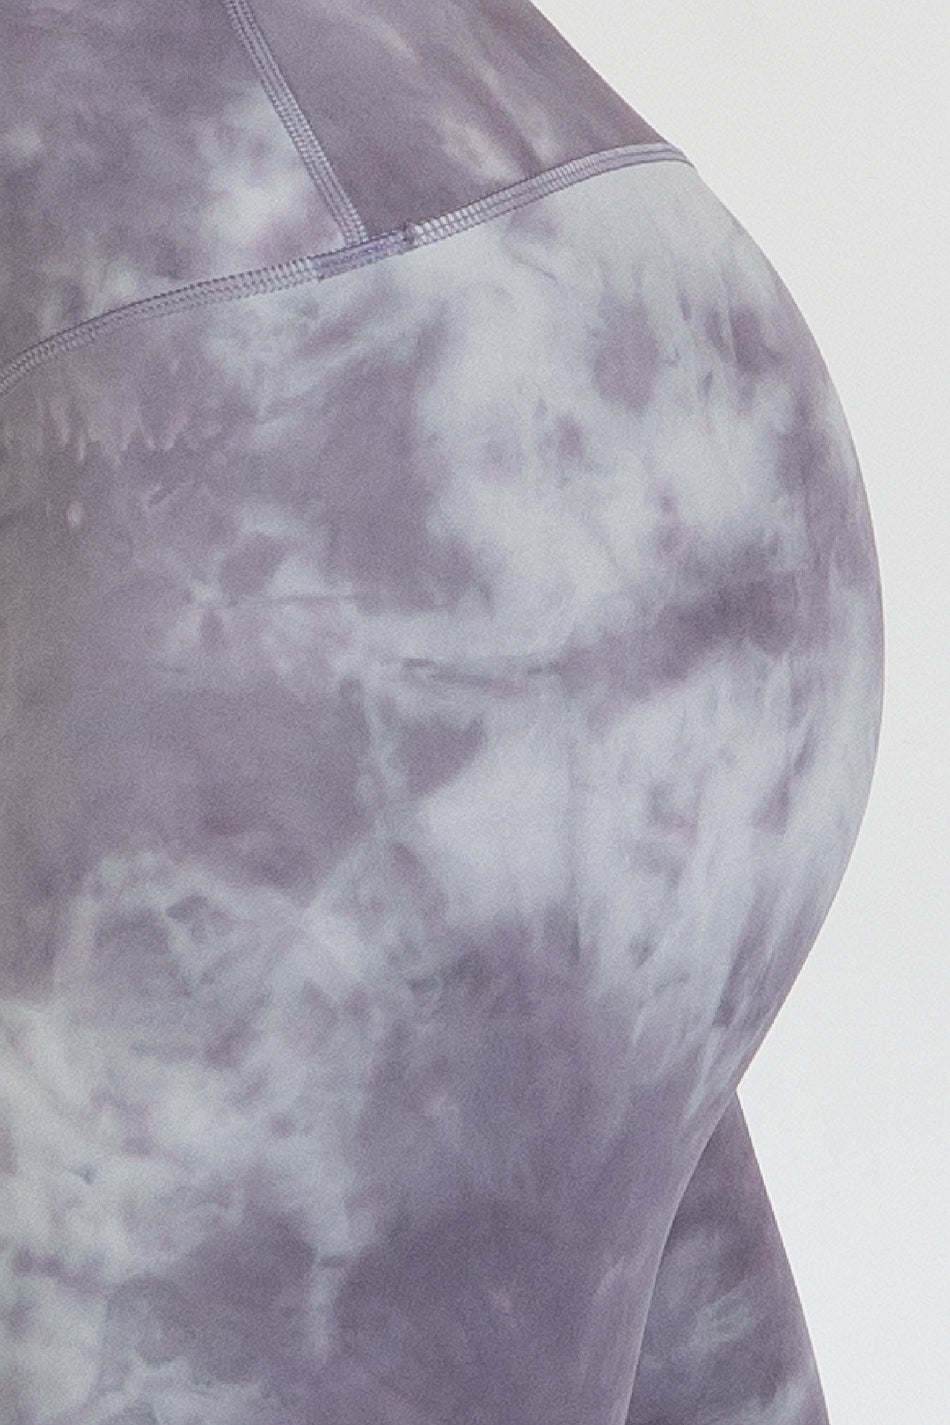 TieDye Leggings - Purple/Silver - WearWolf Clothing UK